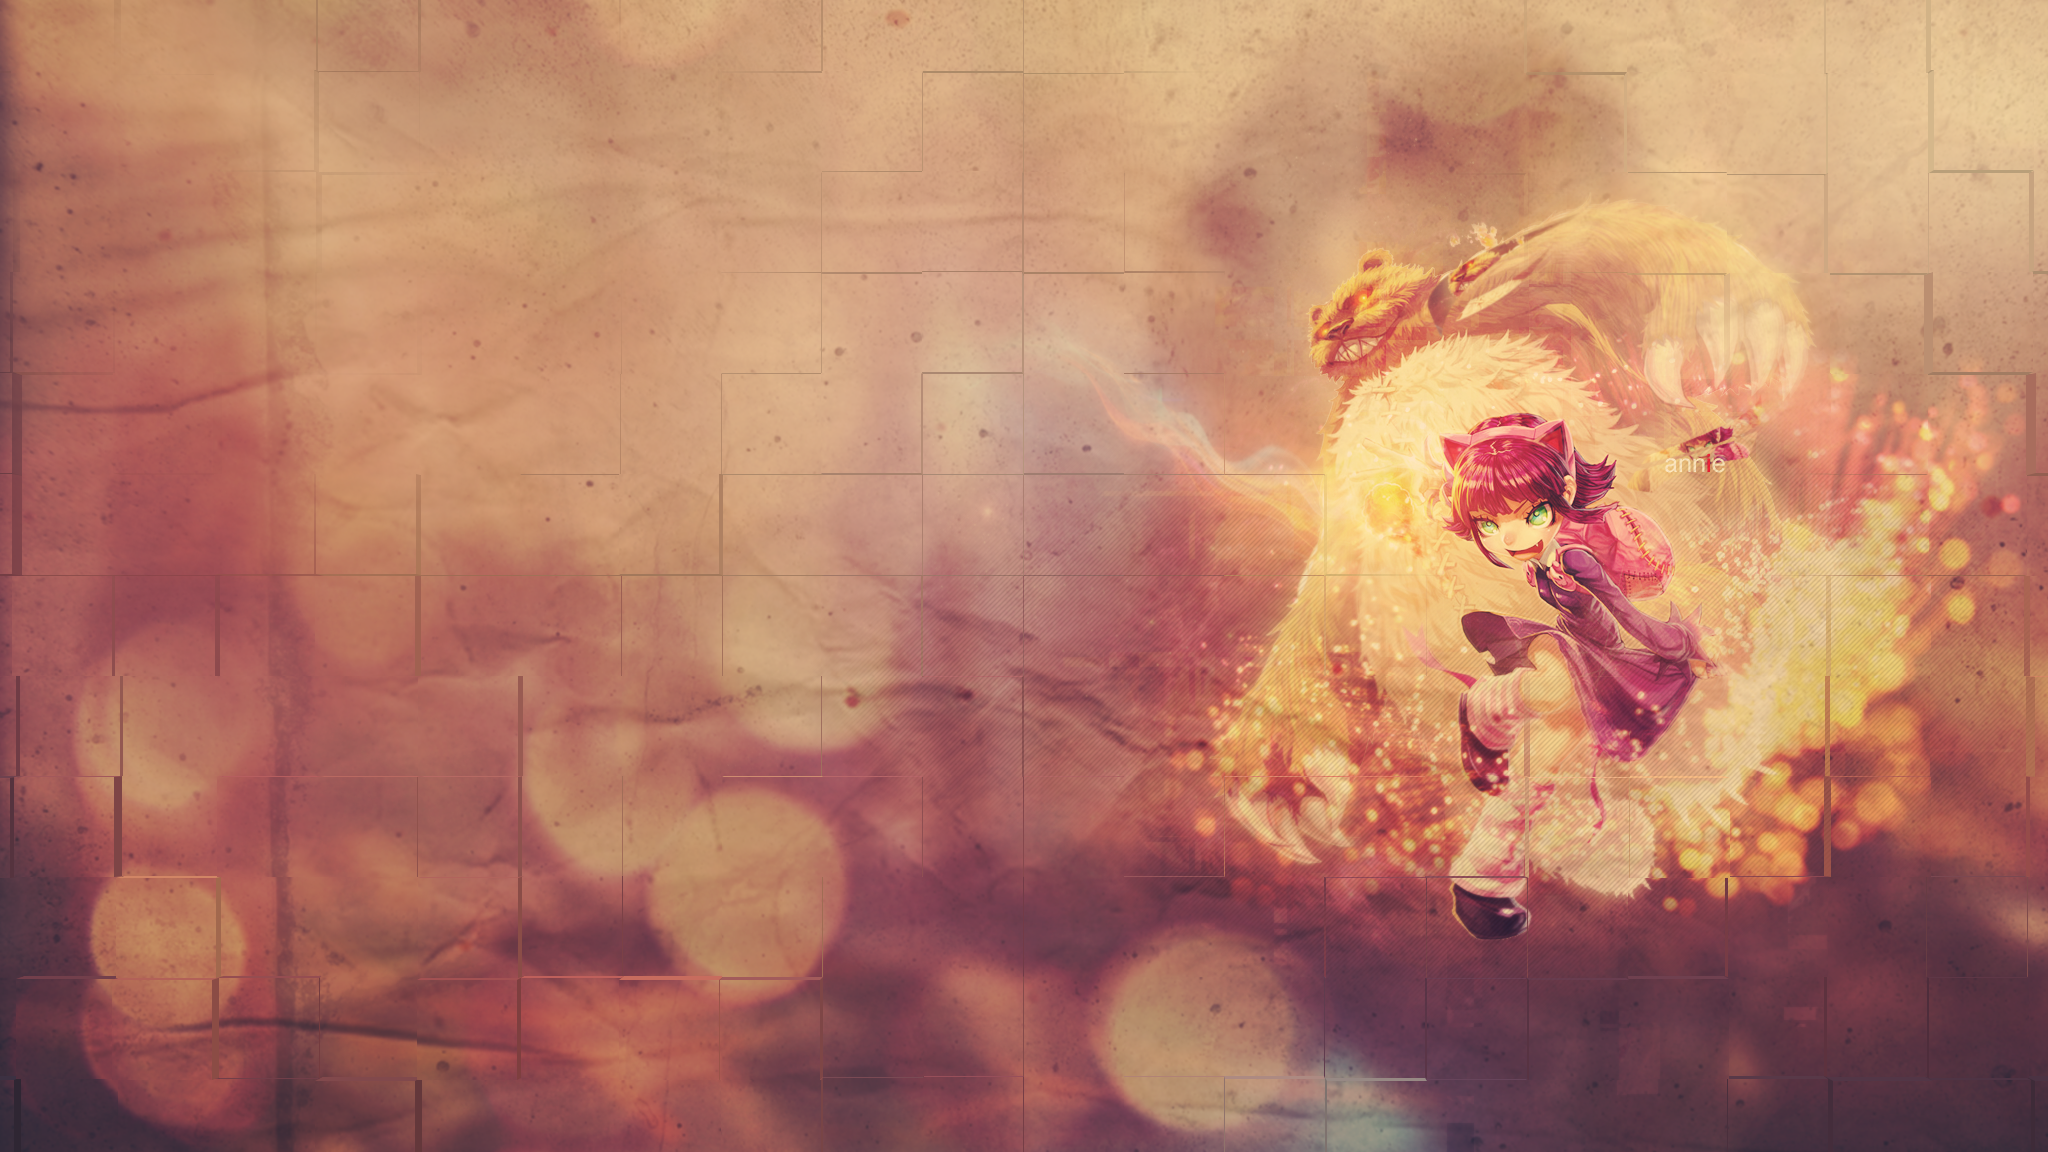 League of legends full hd wallpaper and hintergrund for Fotos 2048x1152